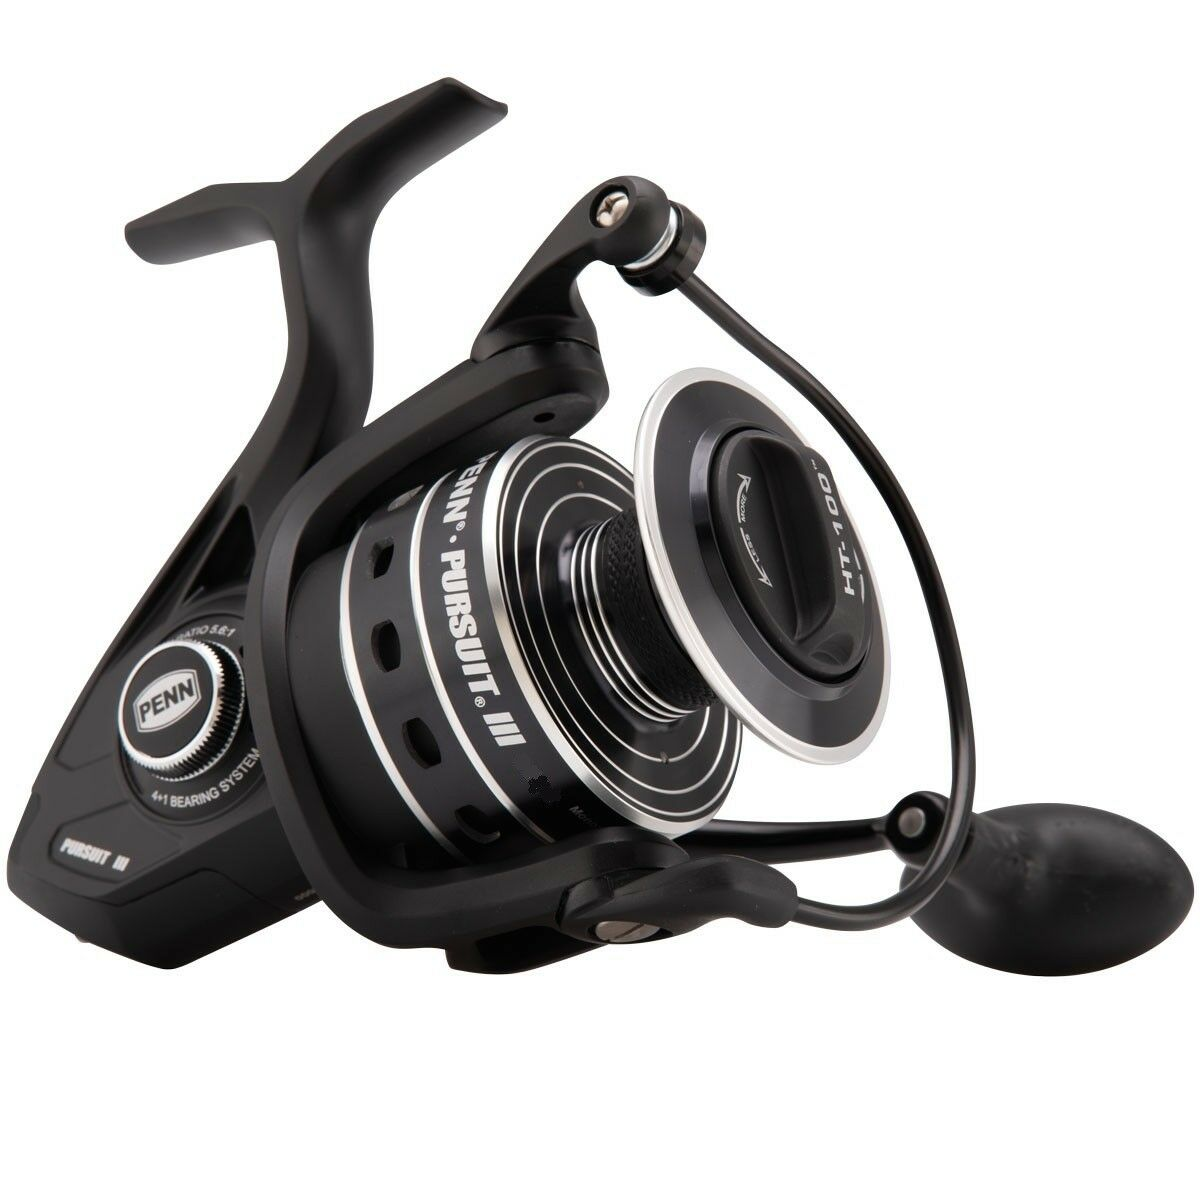 New PENN Pursuit III Mk3 Spinning Reels  - 2500-8000  factory direct